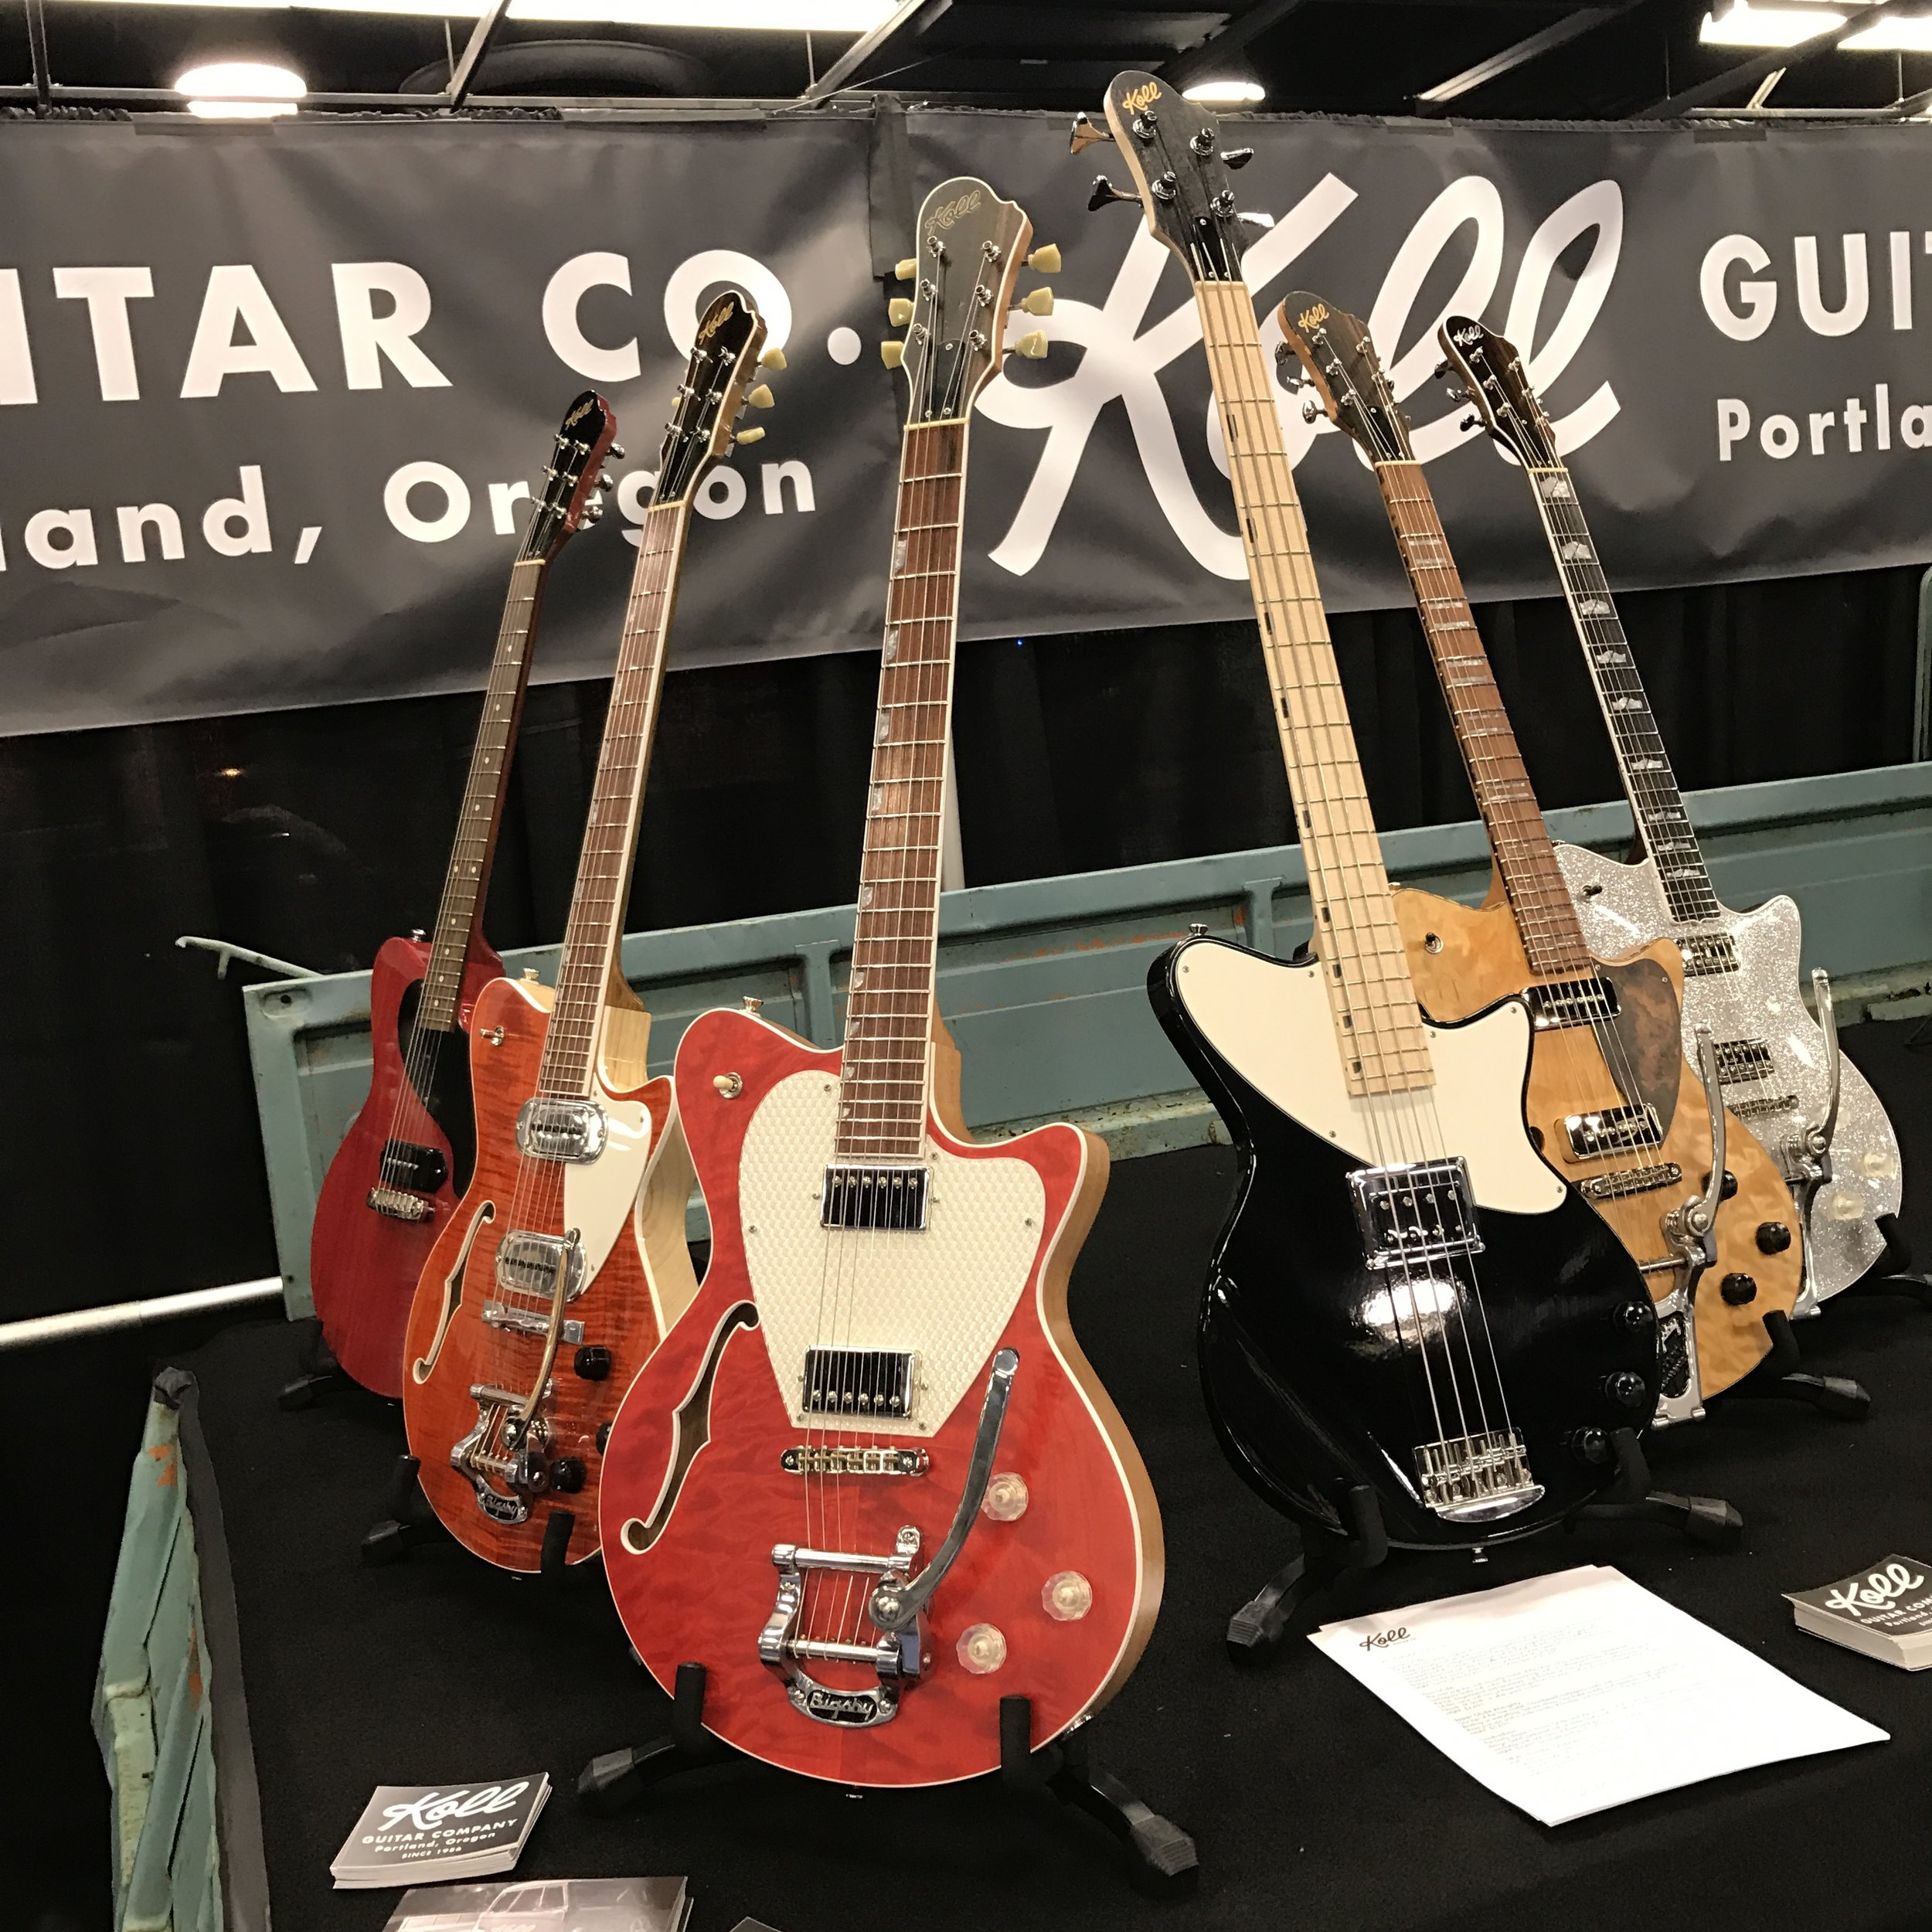 More new guitars... and a black Thunder Glide bass